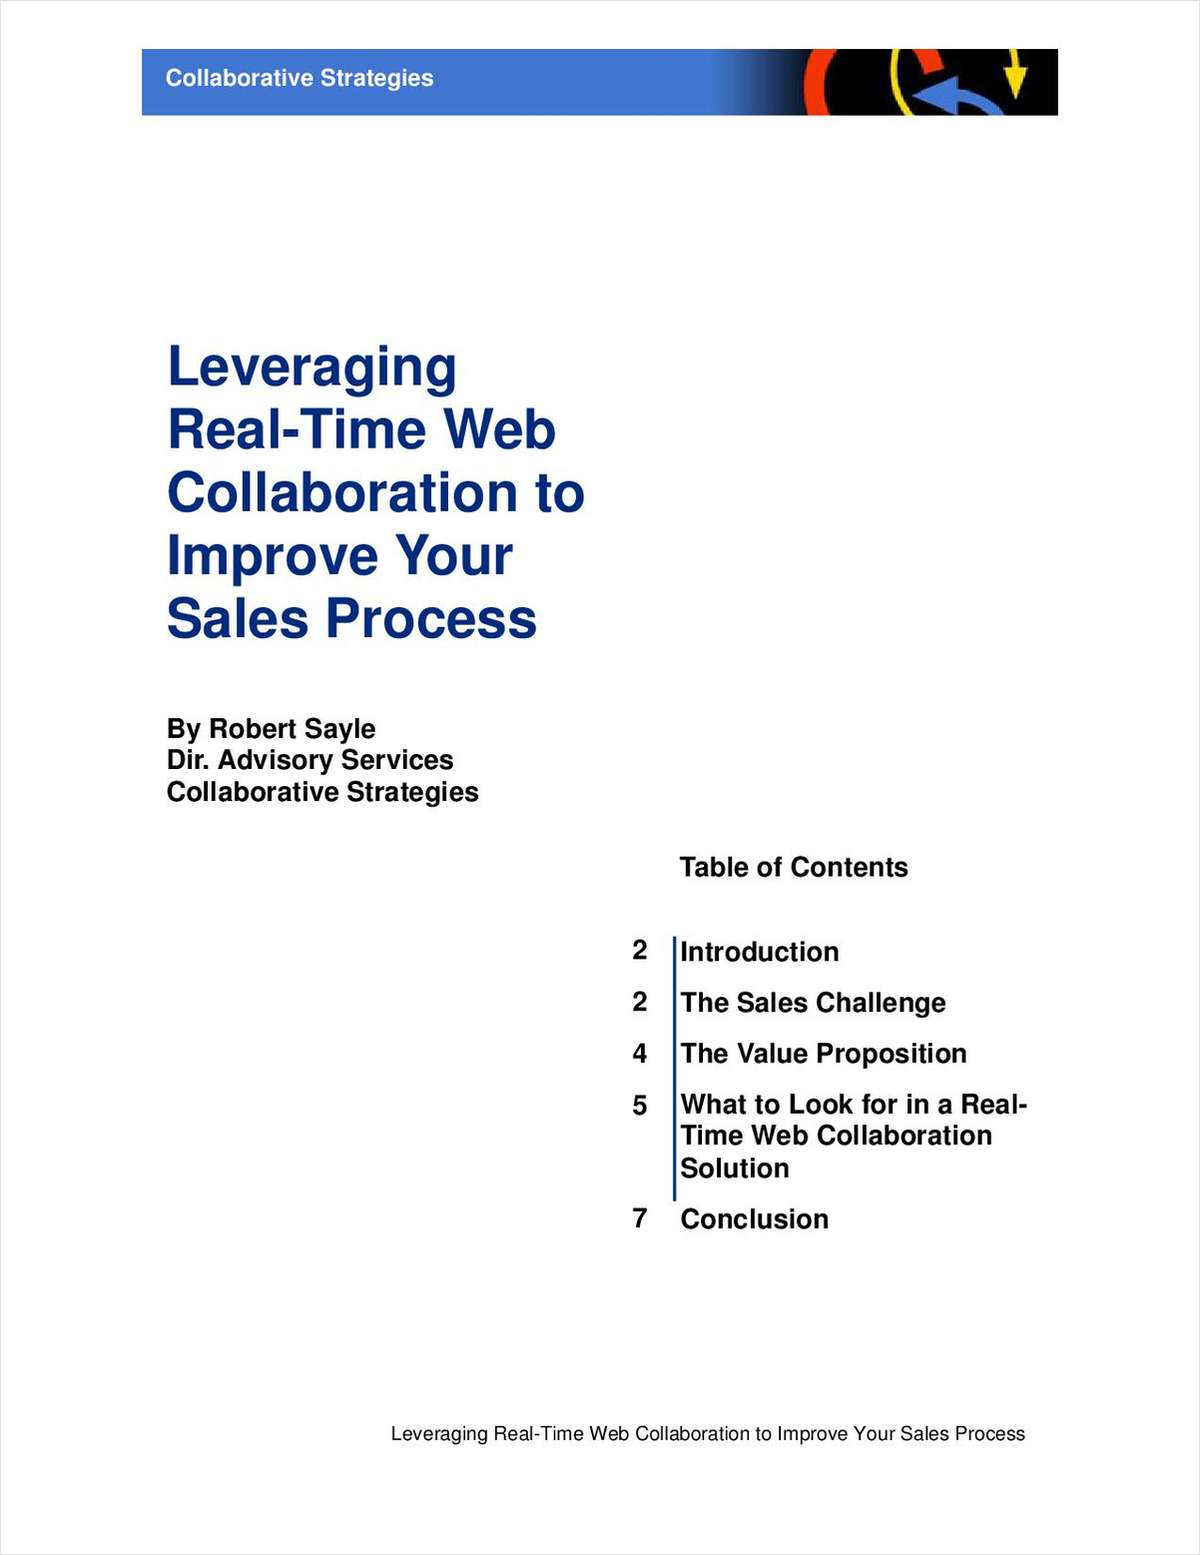 Leveraging Real-Time Web Collaboration to Improve Your Sales Process